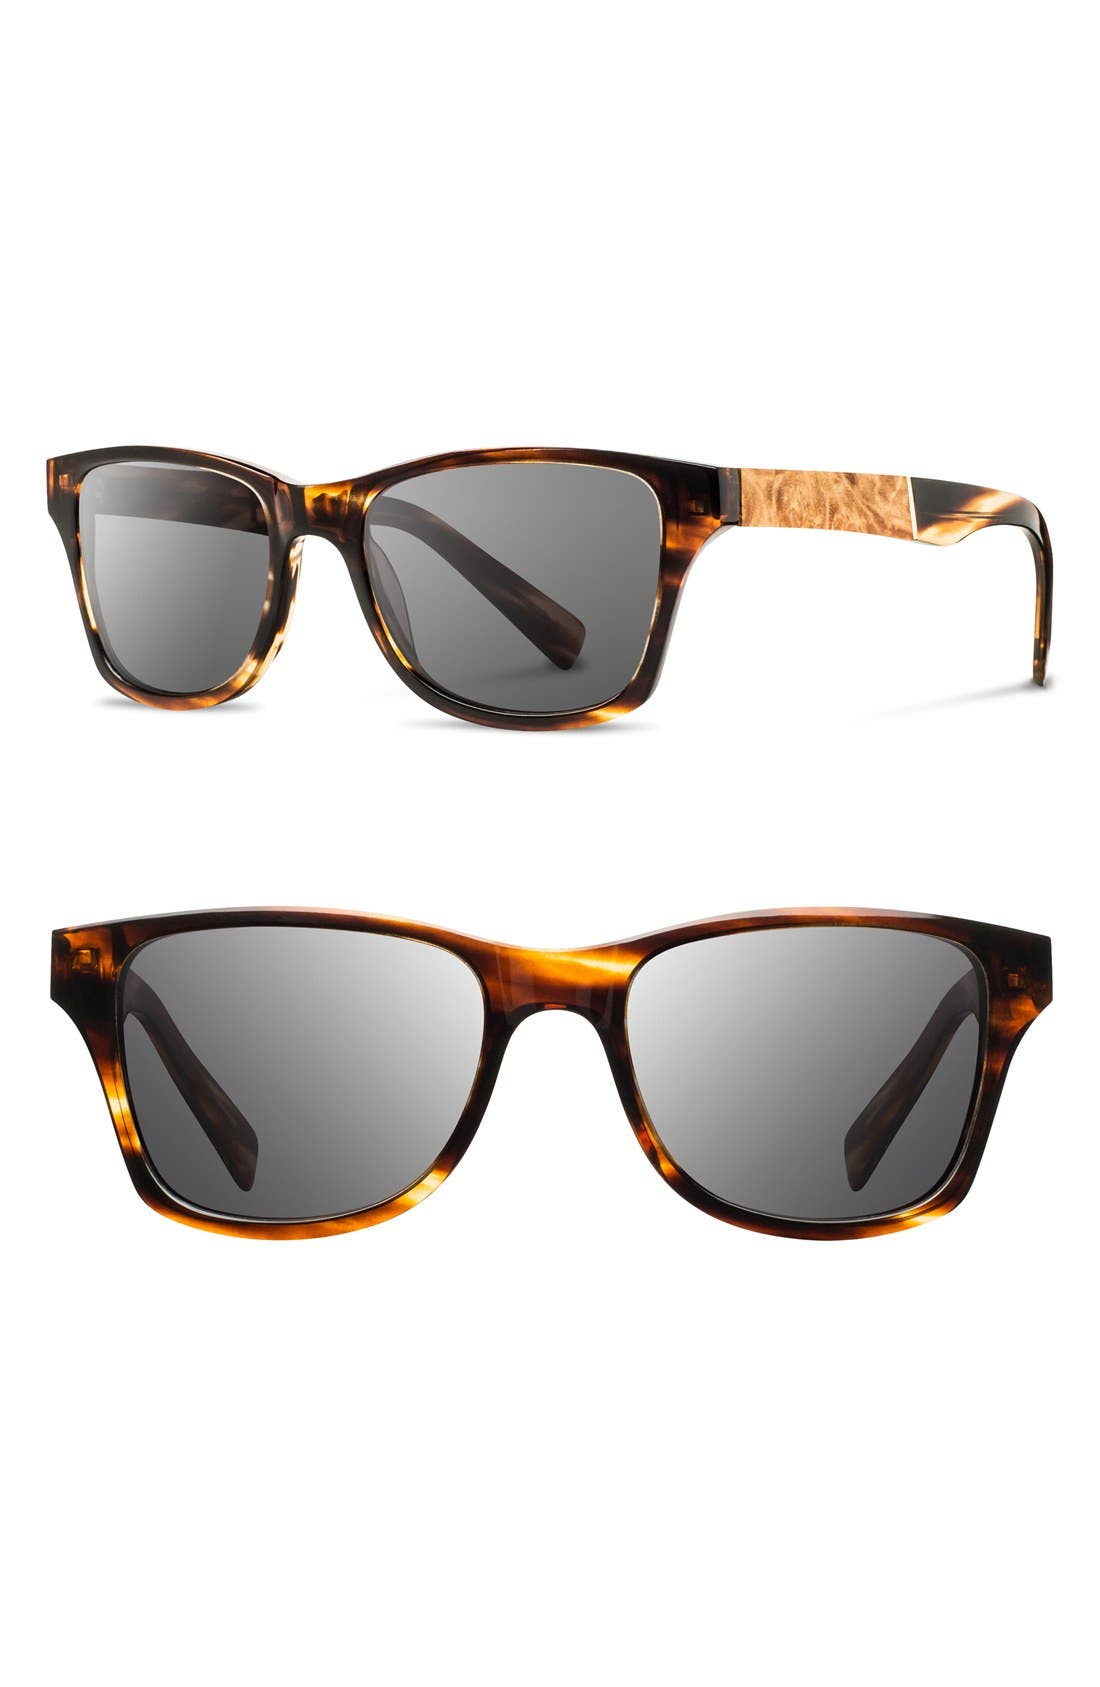 Main Image - Shwood 'Canby' 53mm Sunglasses